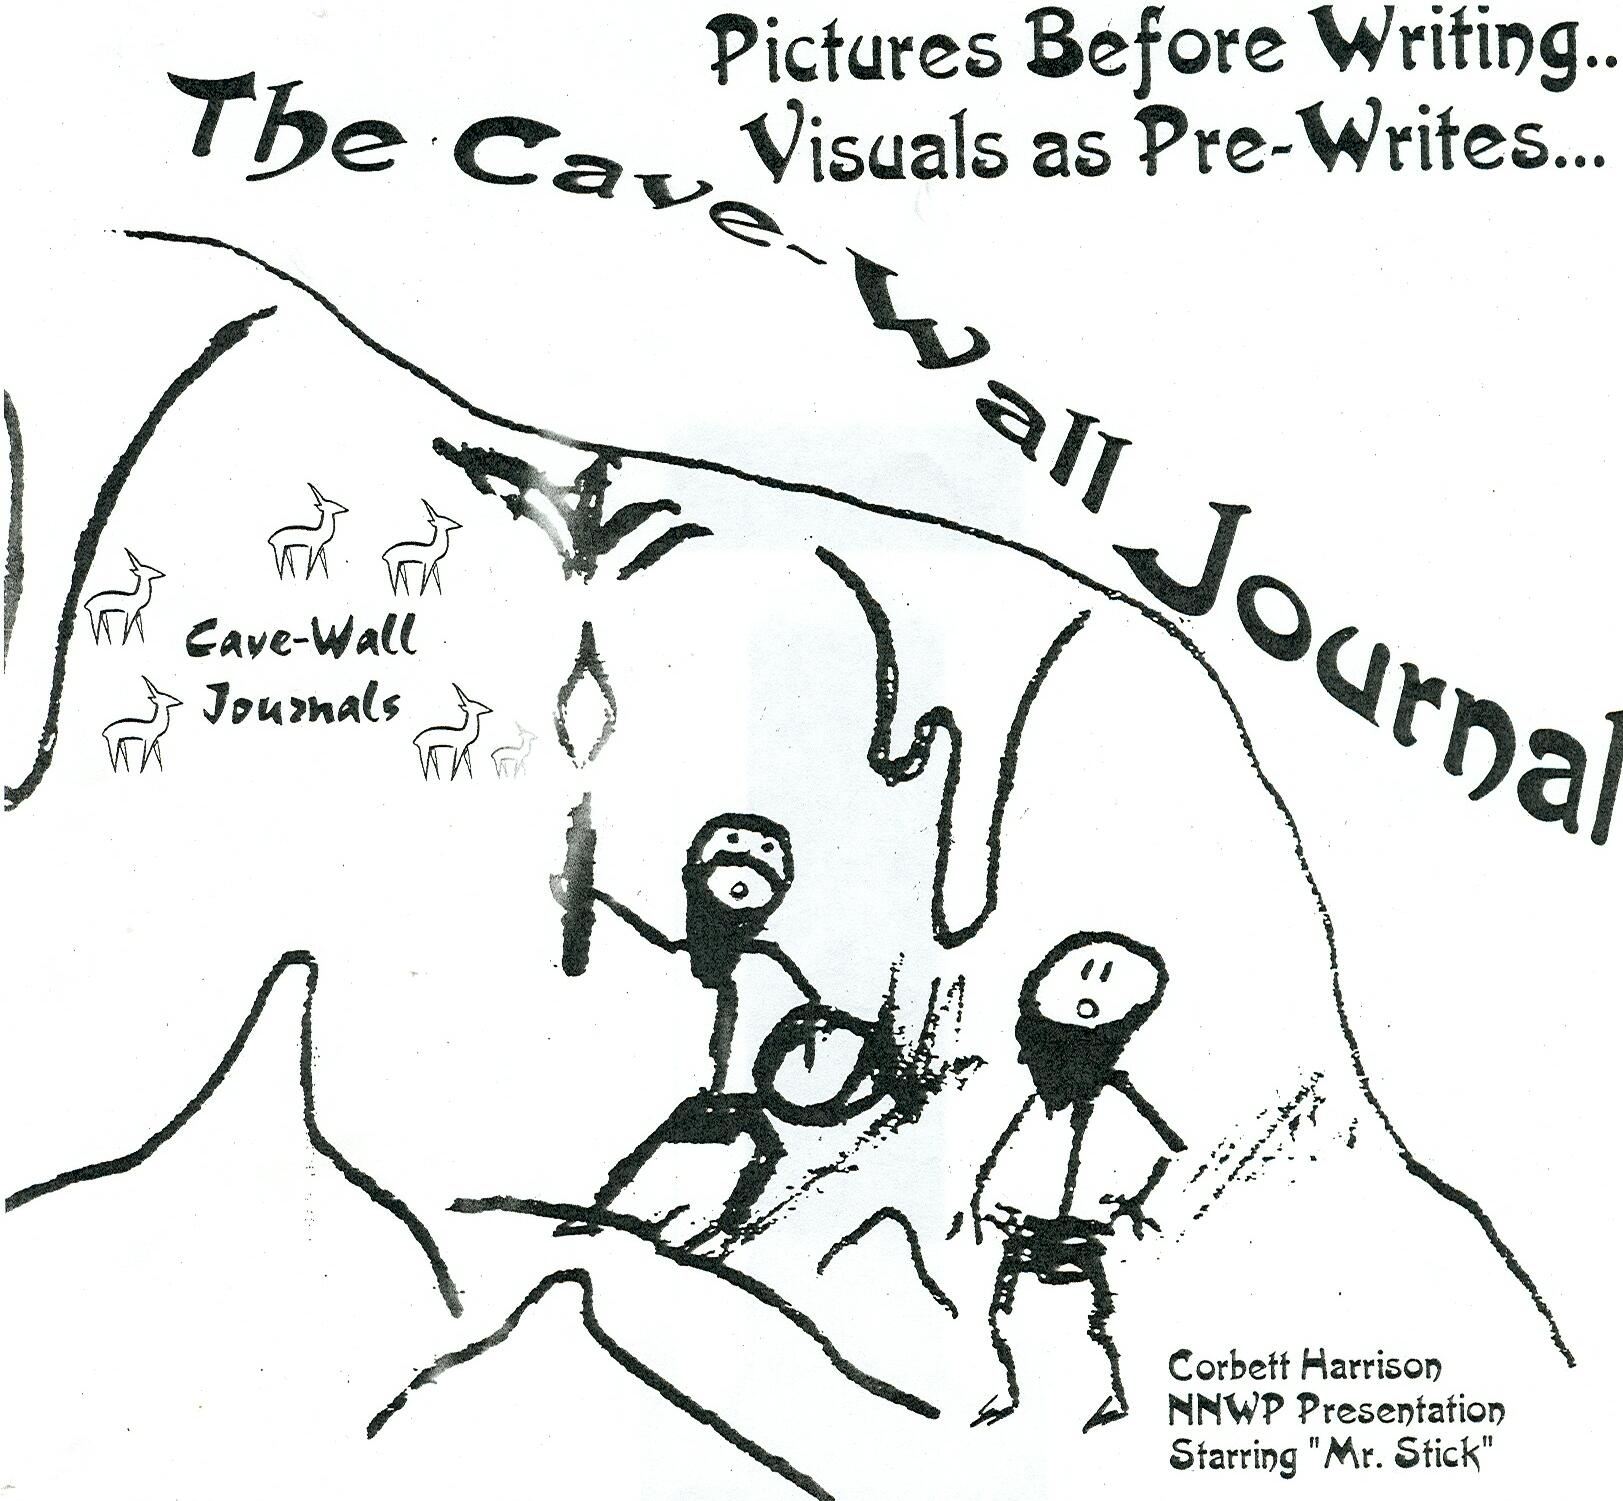 Always Write: Corbett's Pre-writing Resources for Journals